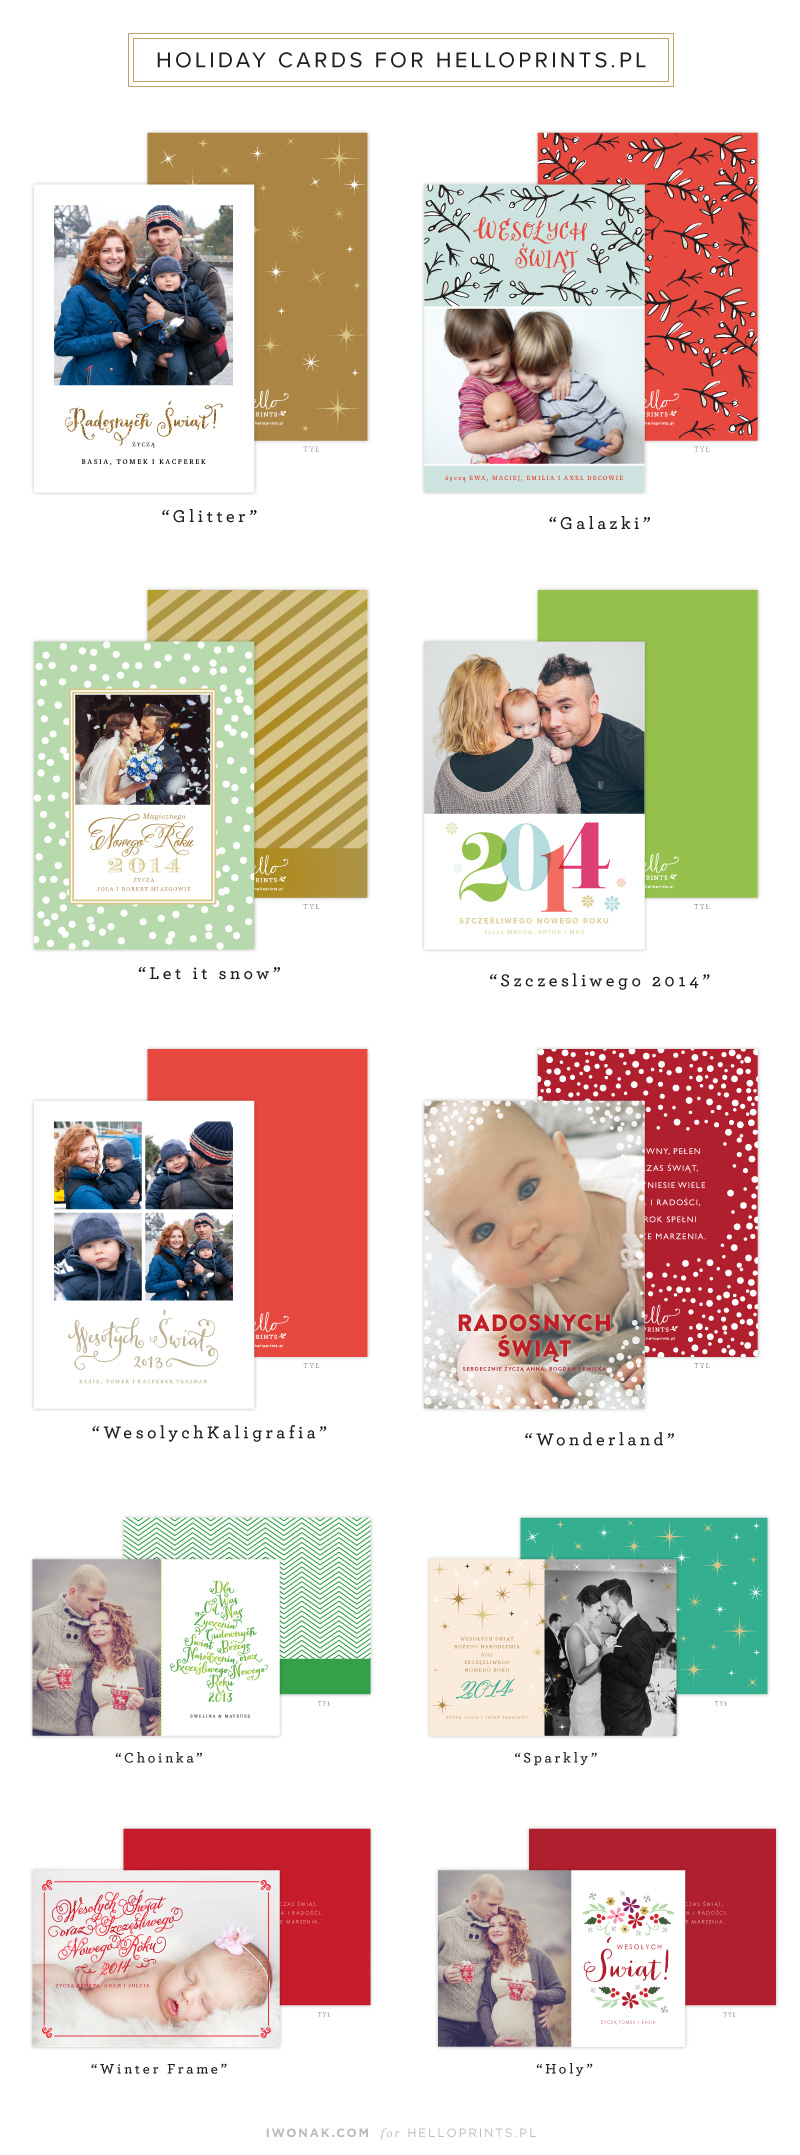 HolidayCardsForHelloPrints.pl